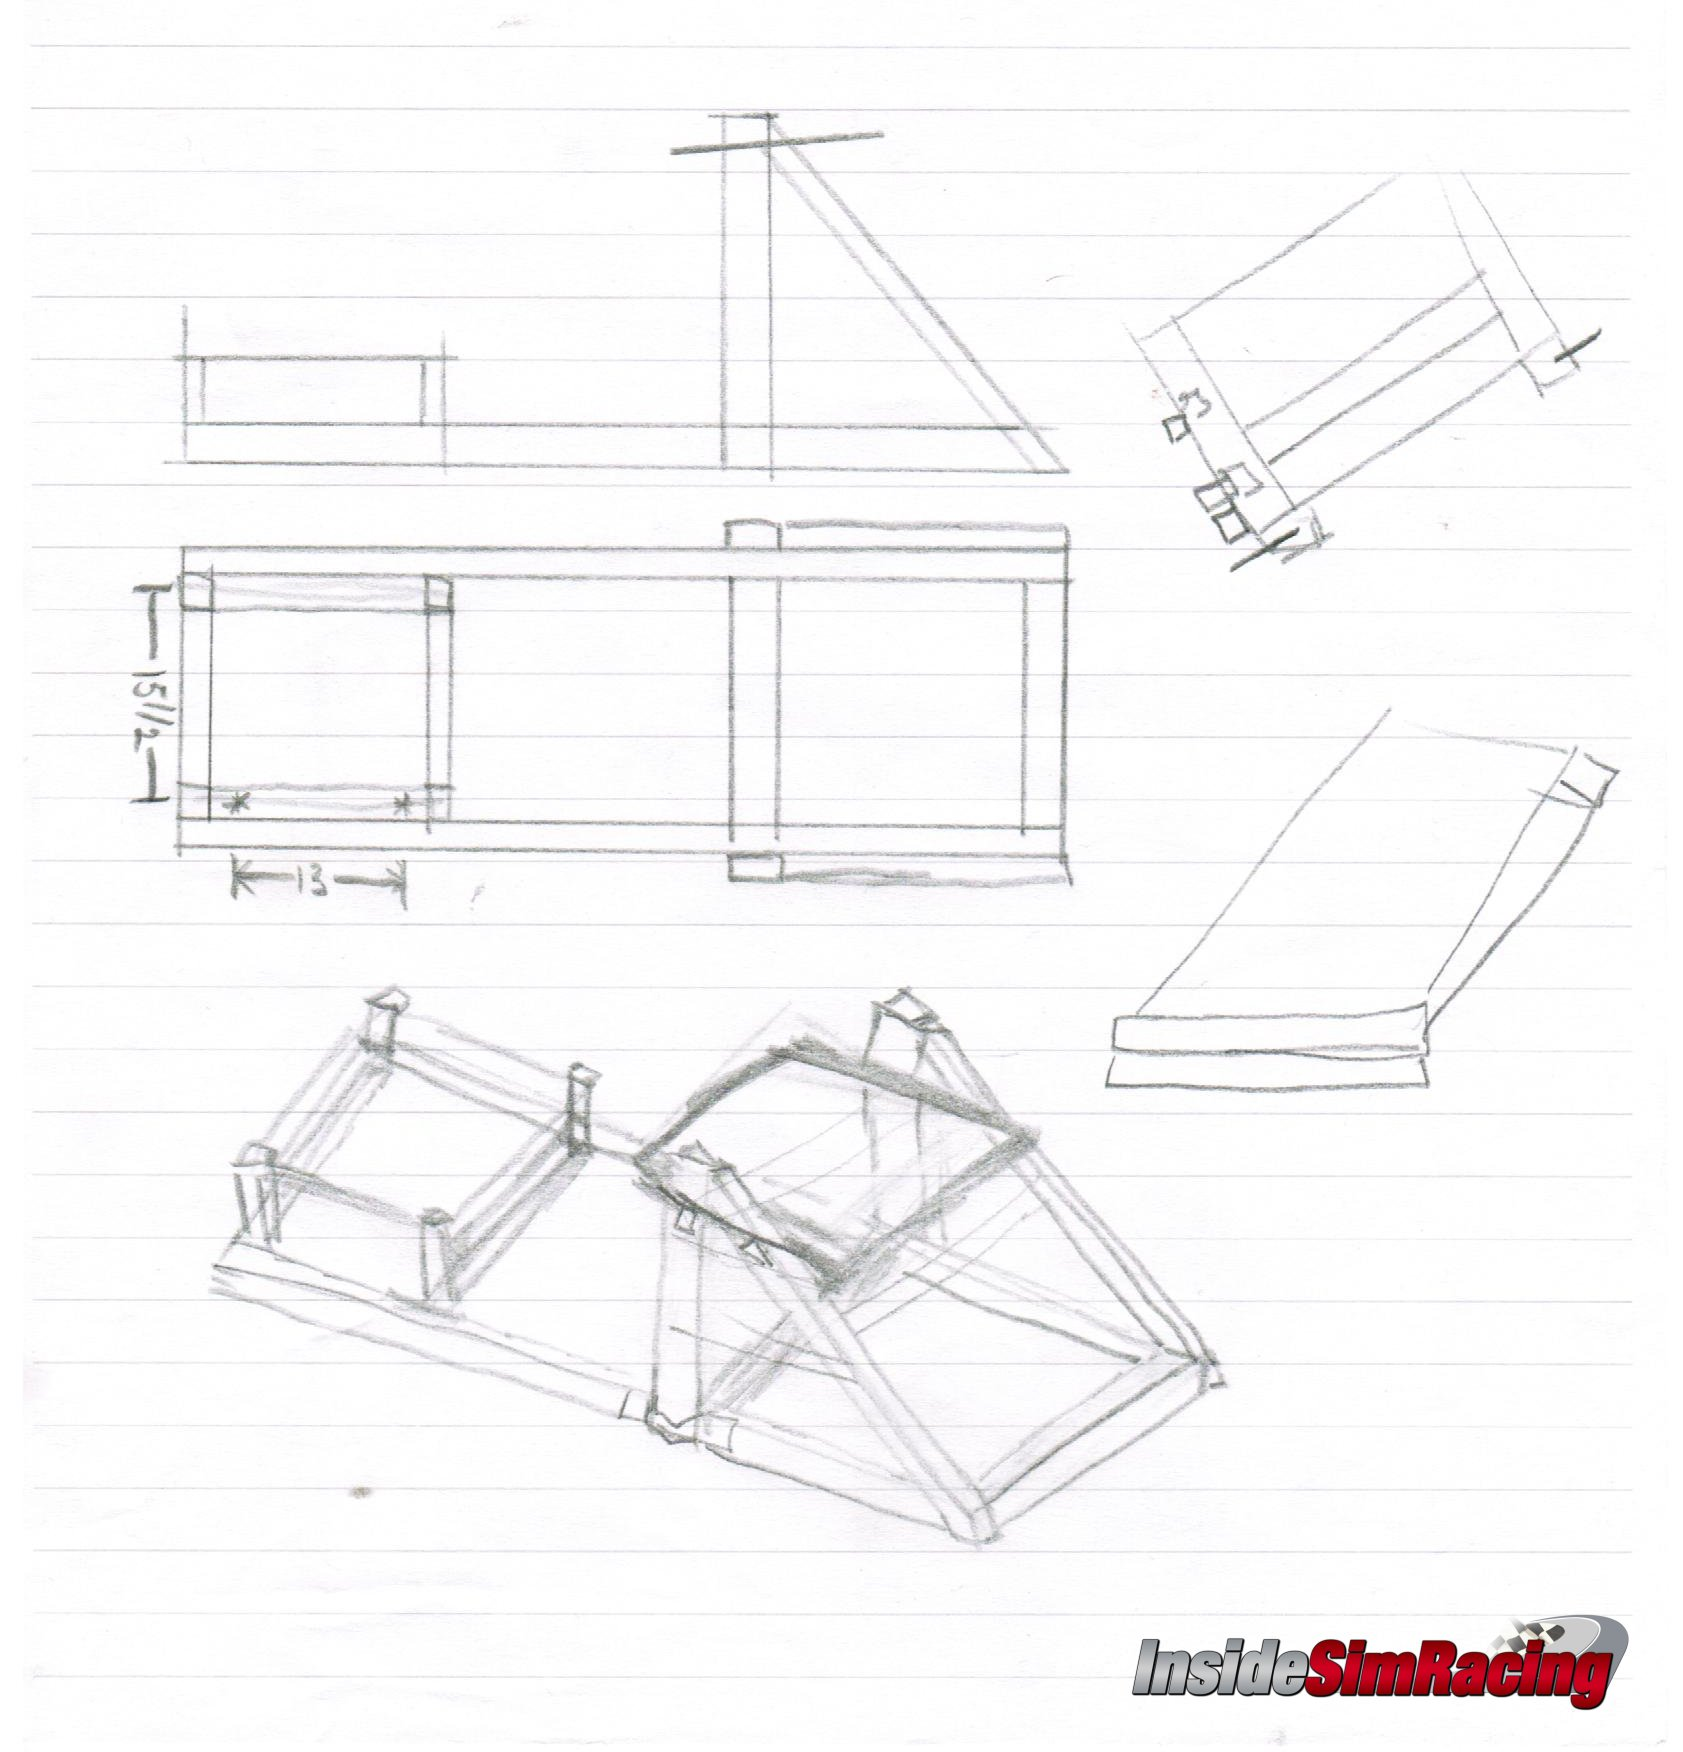 Diy pvc sim racing rig plans do it your self for House plan simulator